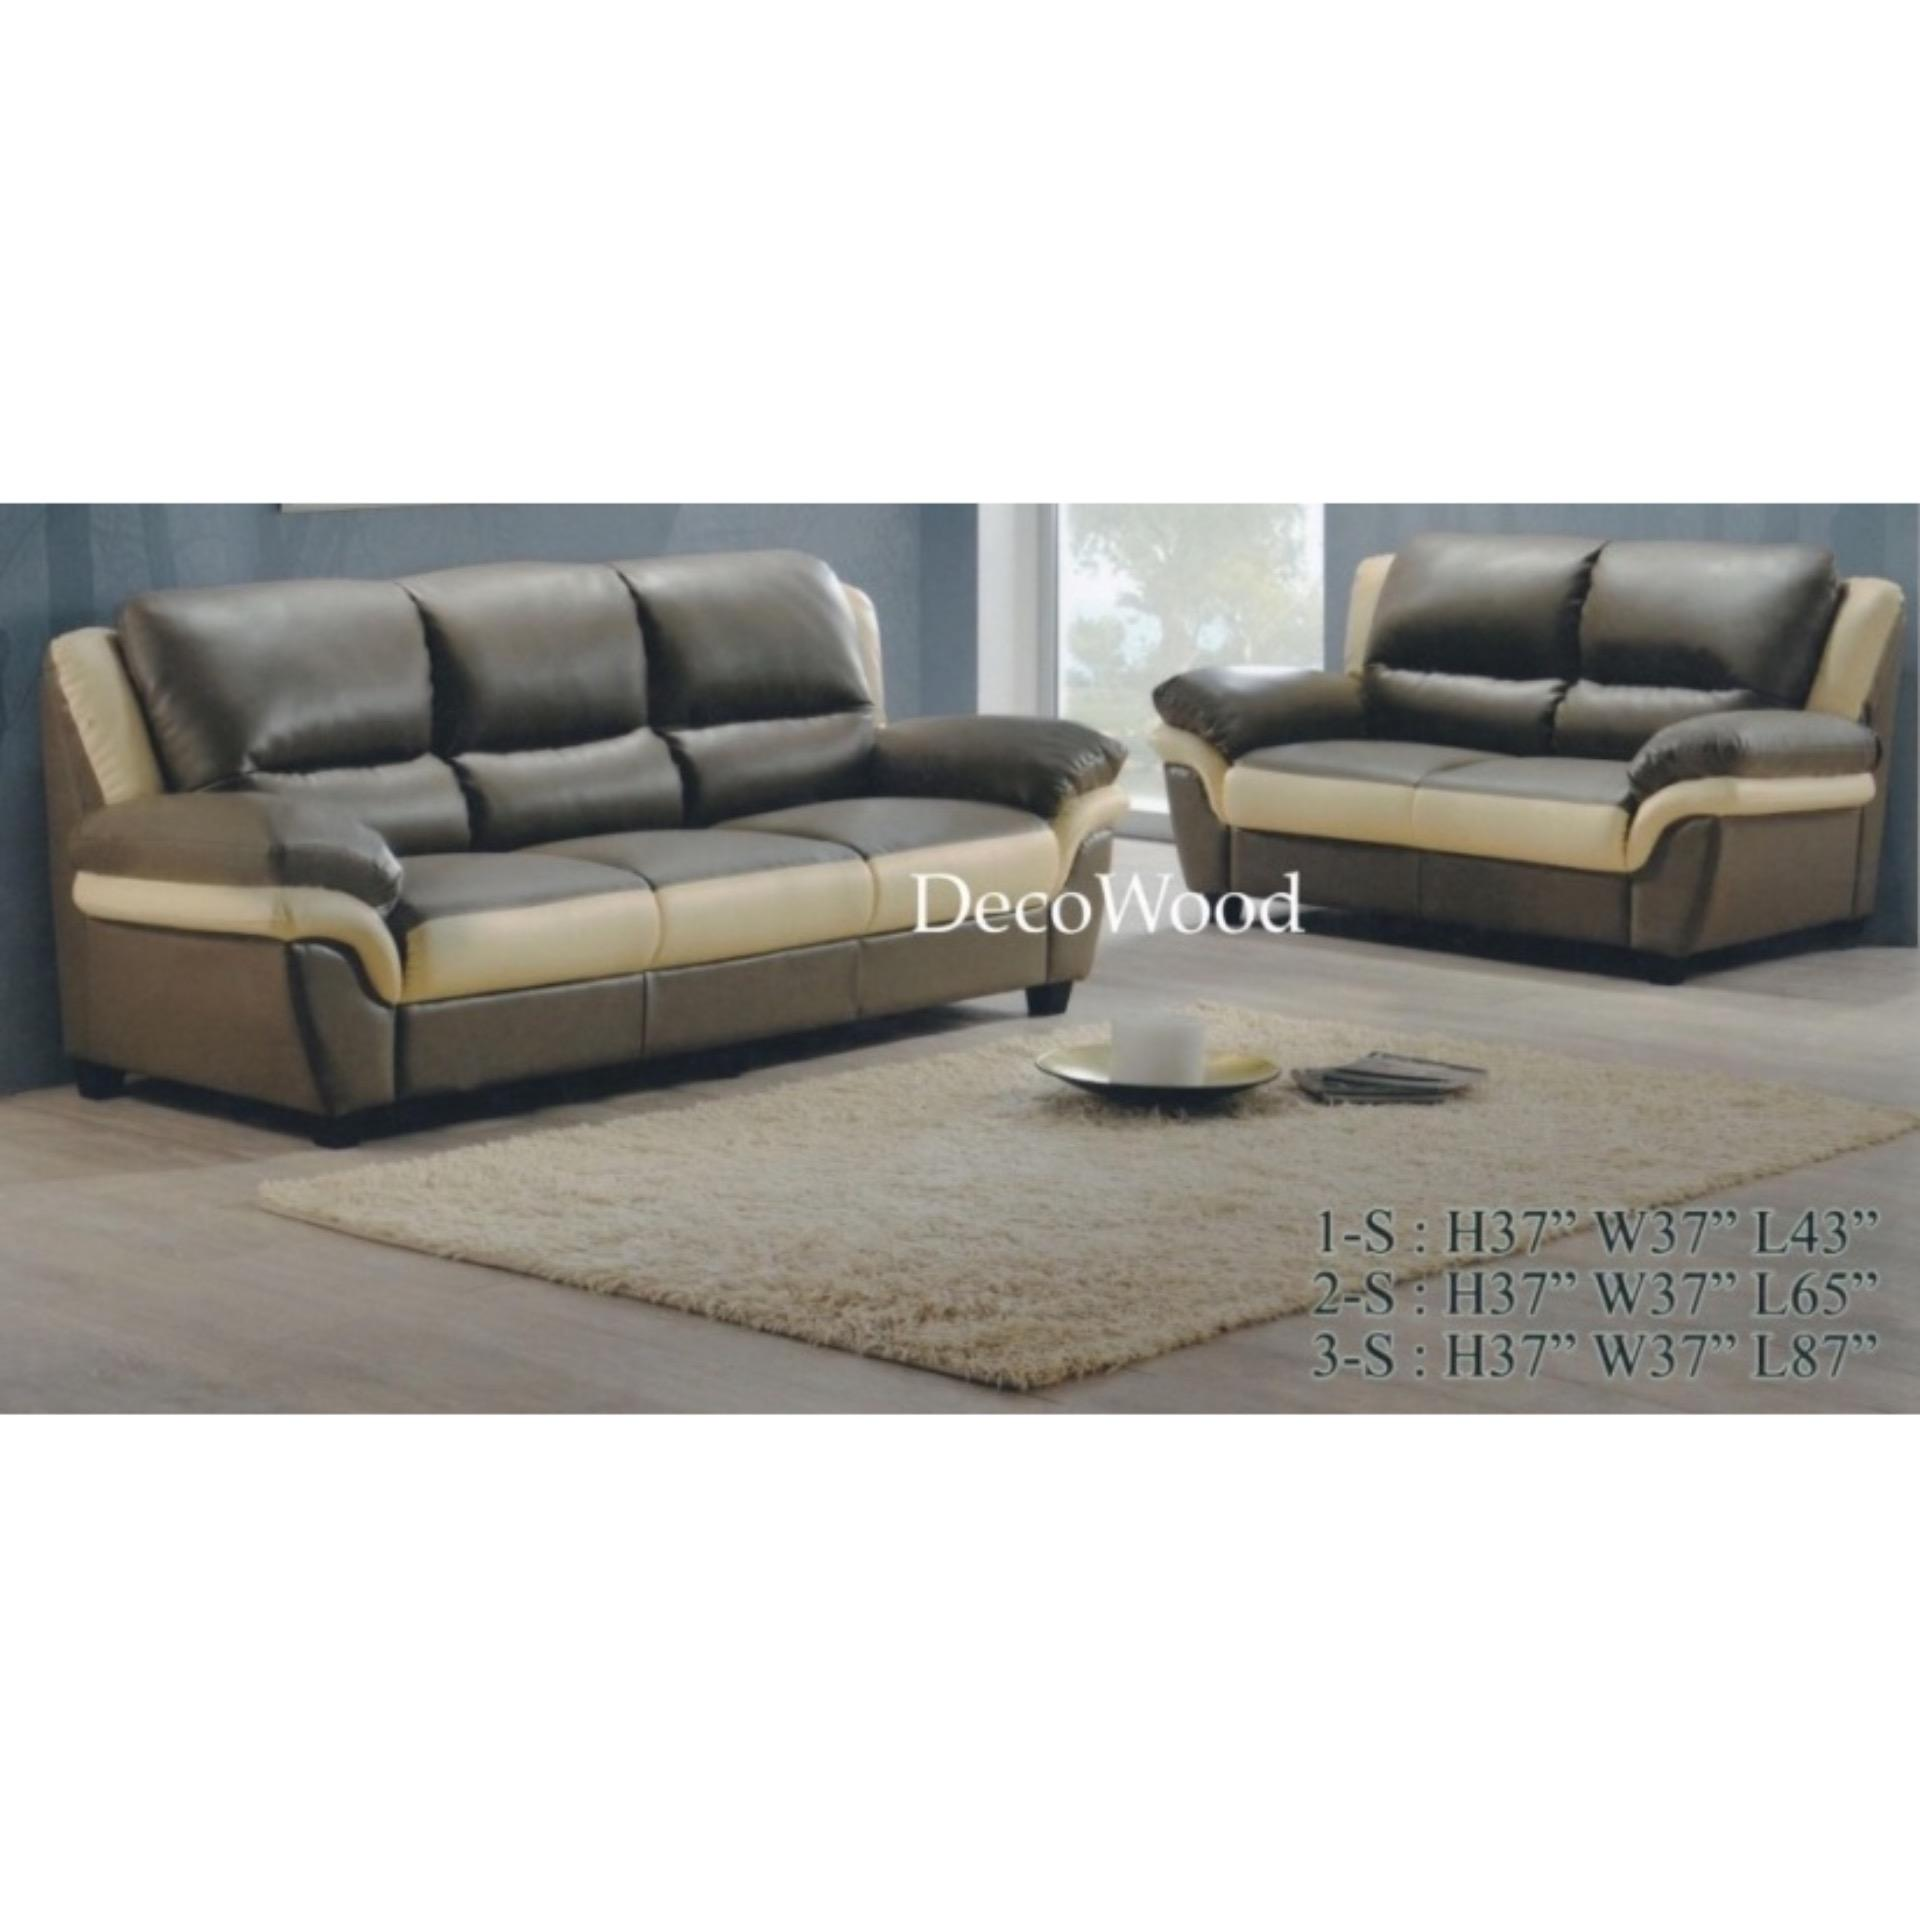 Relax Sofa Sofa 2 3 Seater Fully Leather Sofa Lounge Chair Relax Sofa Relax Chair